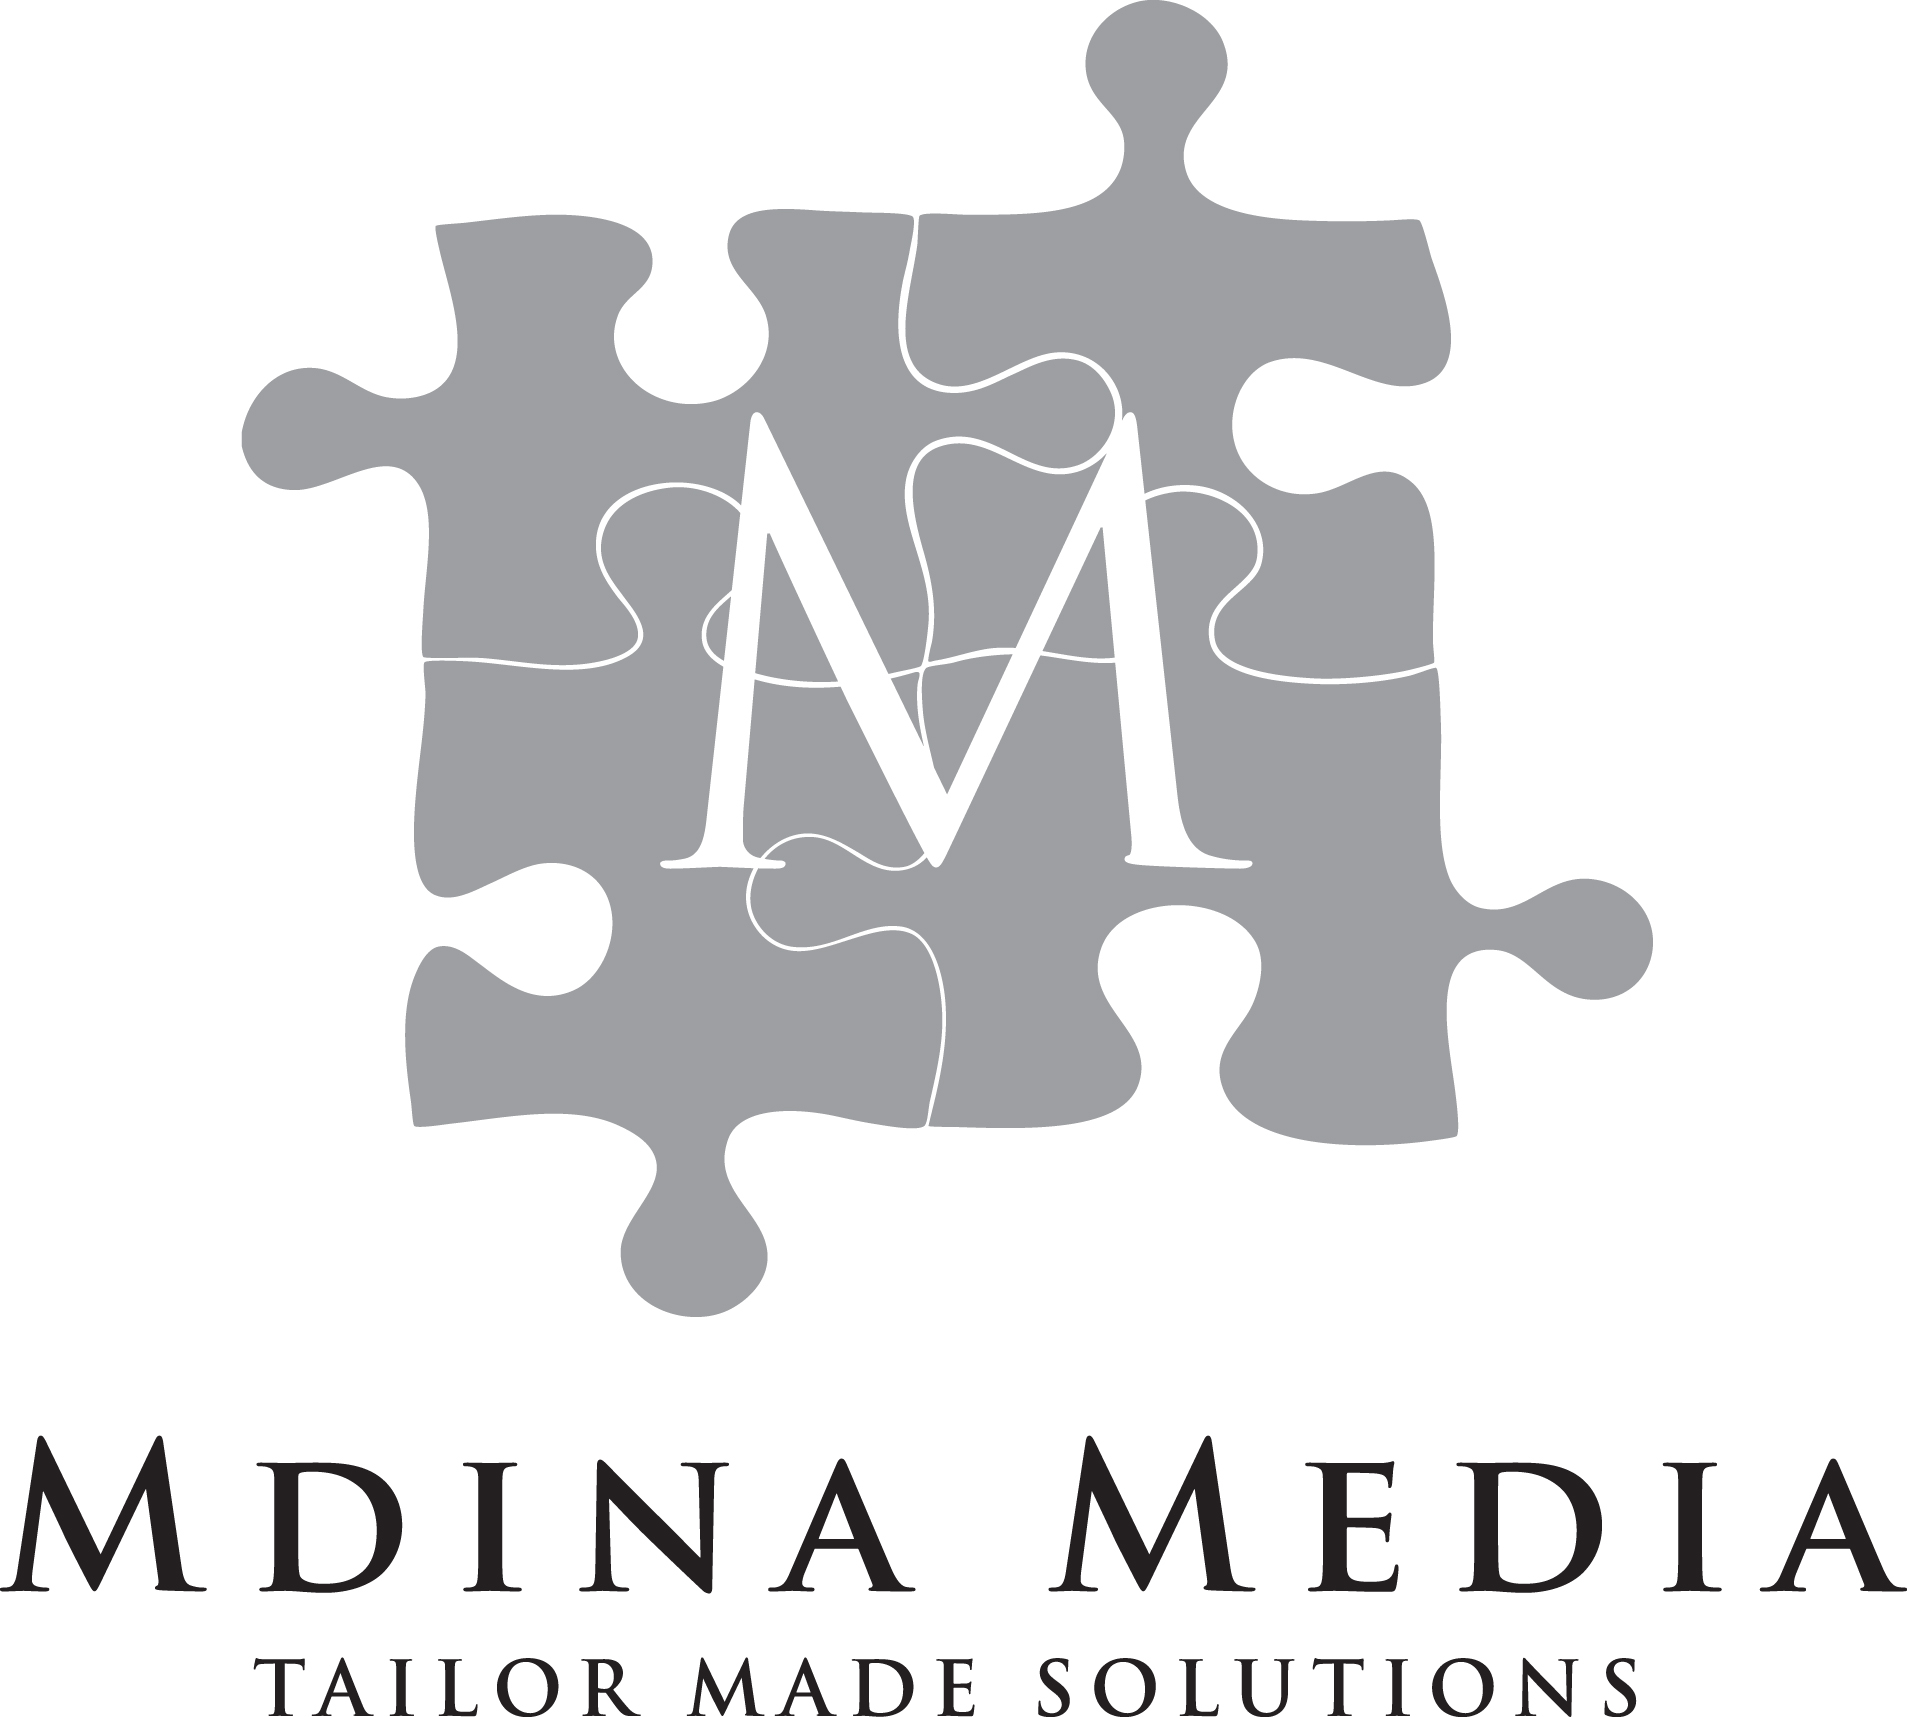 Mdina Media brings its new QS-Series to the Scala stand at ISE